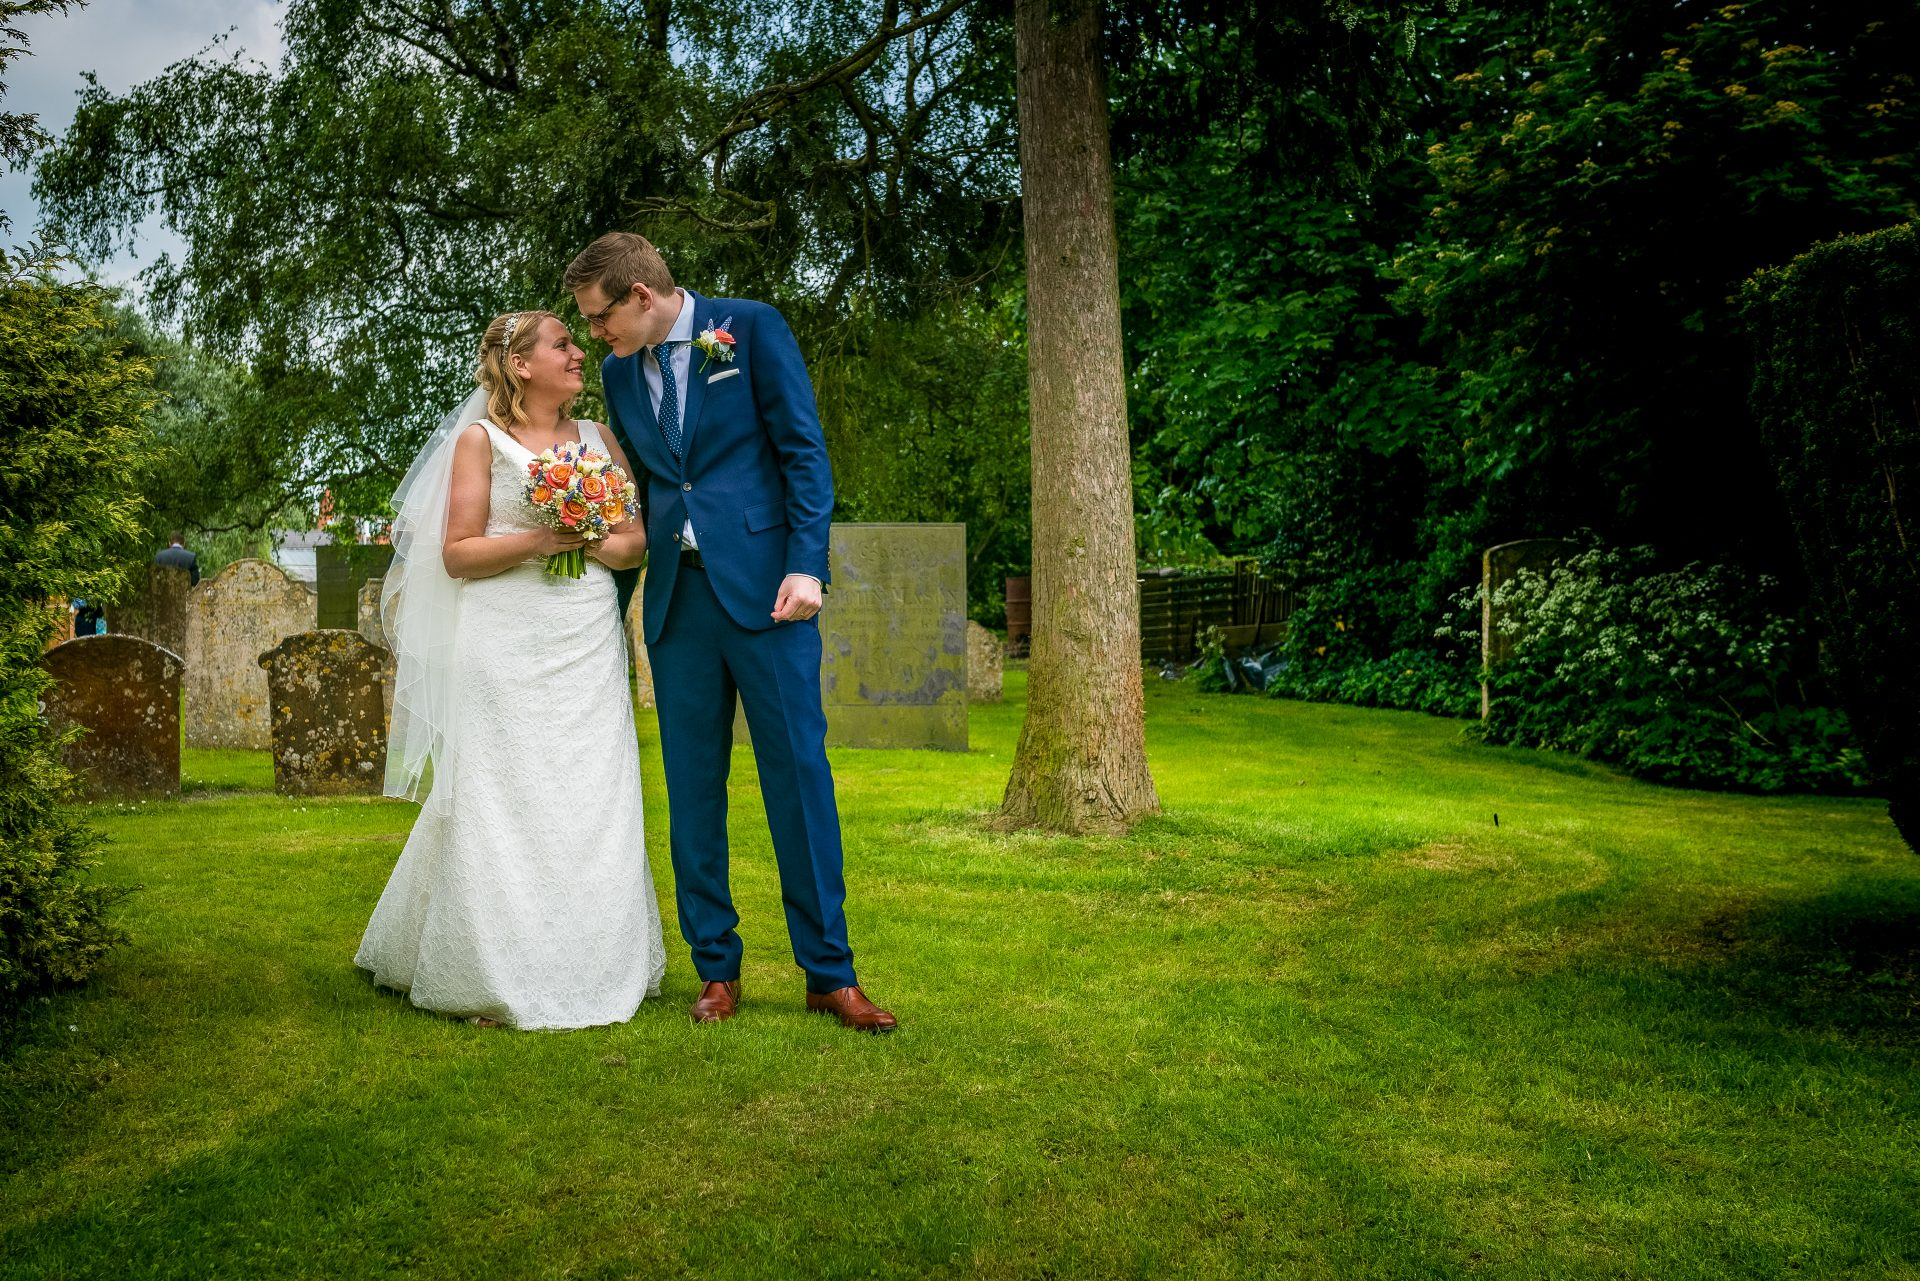 YFFUK Phil Endicott Newell St Mary Church Rushden Northamptonshire bride groom kissing under the tree in the gardens